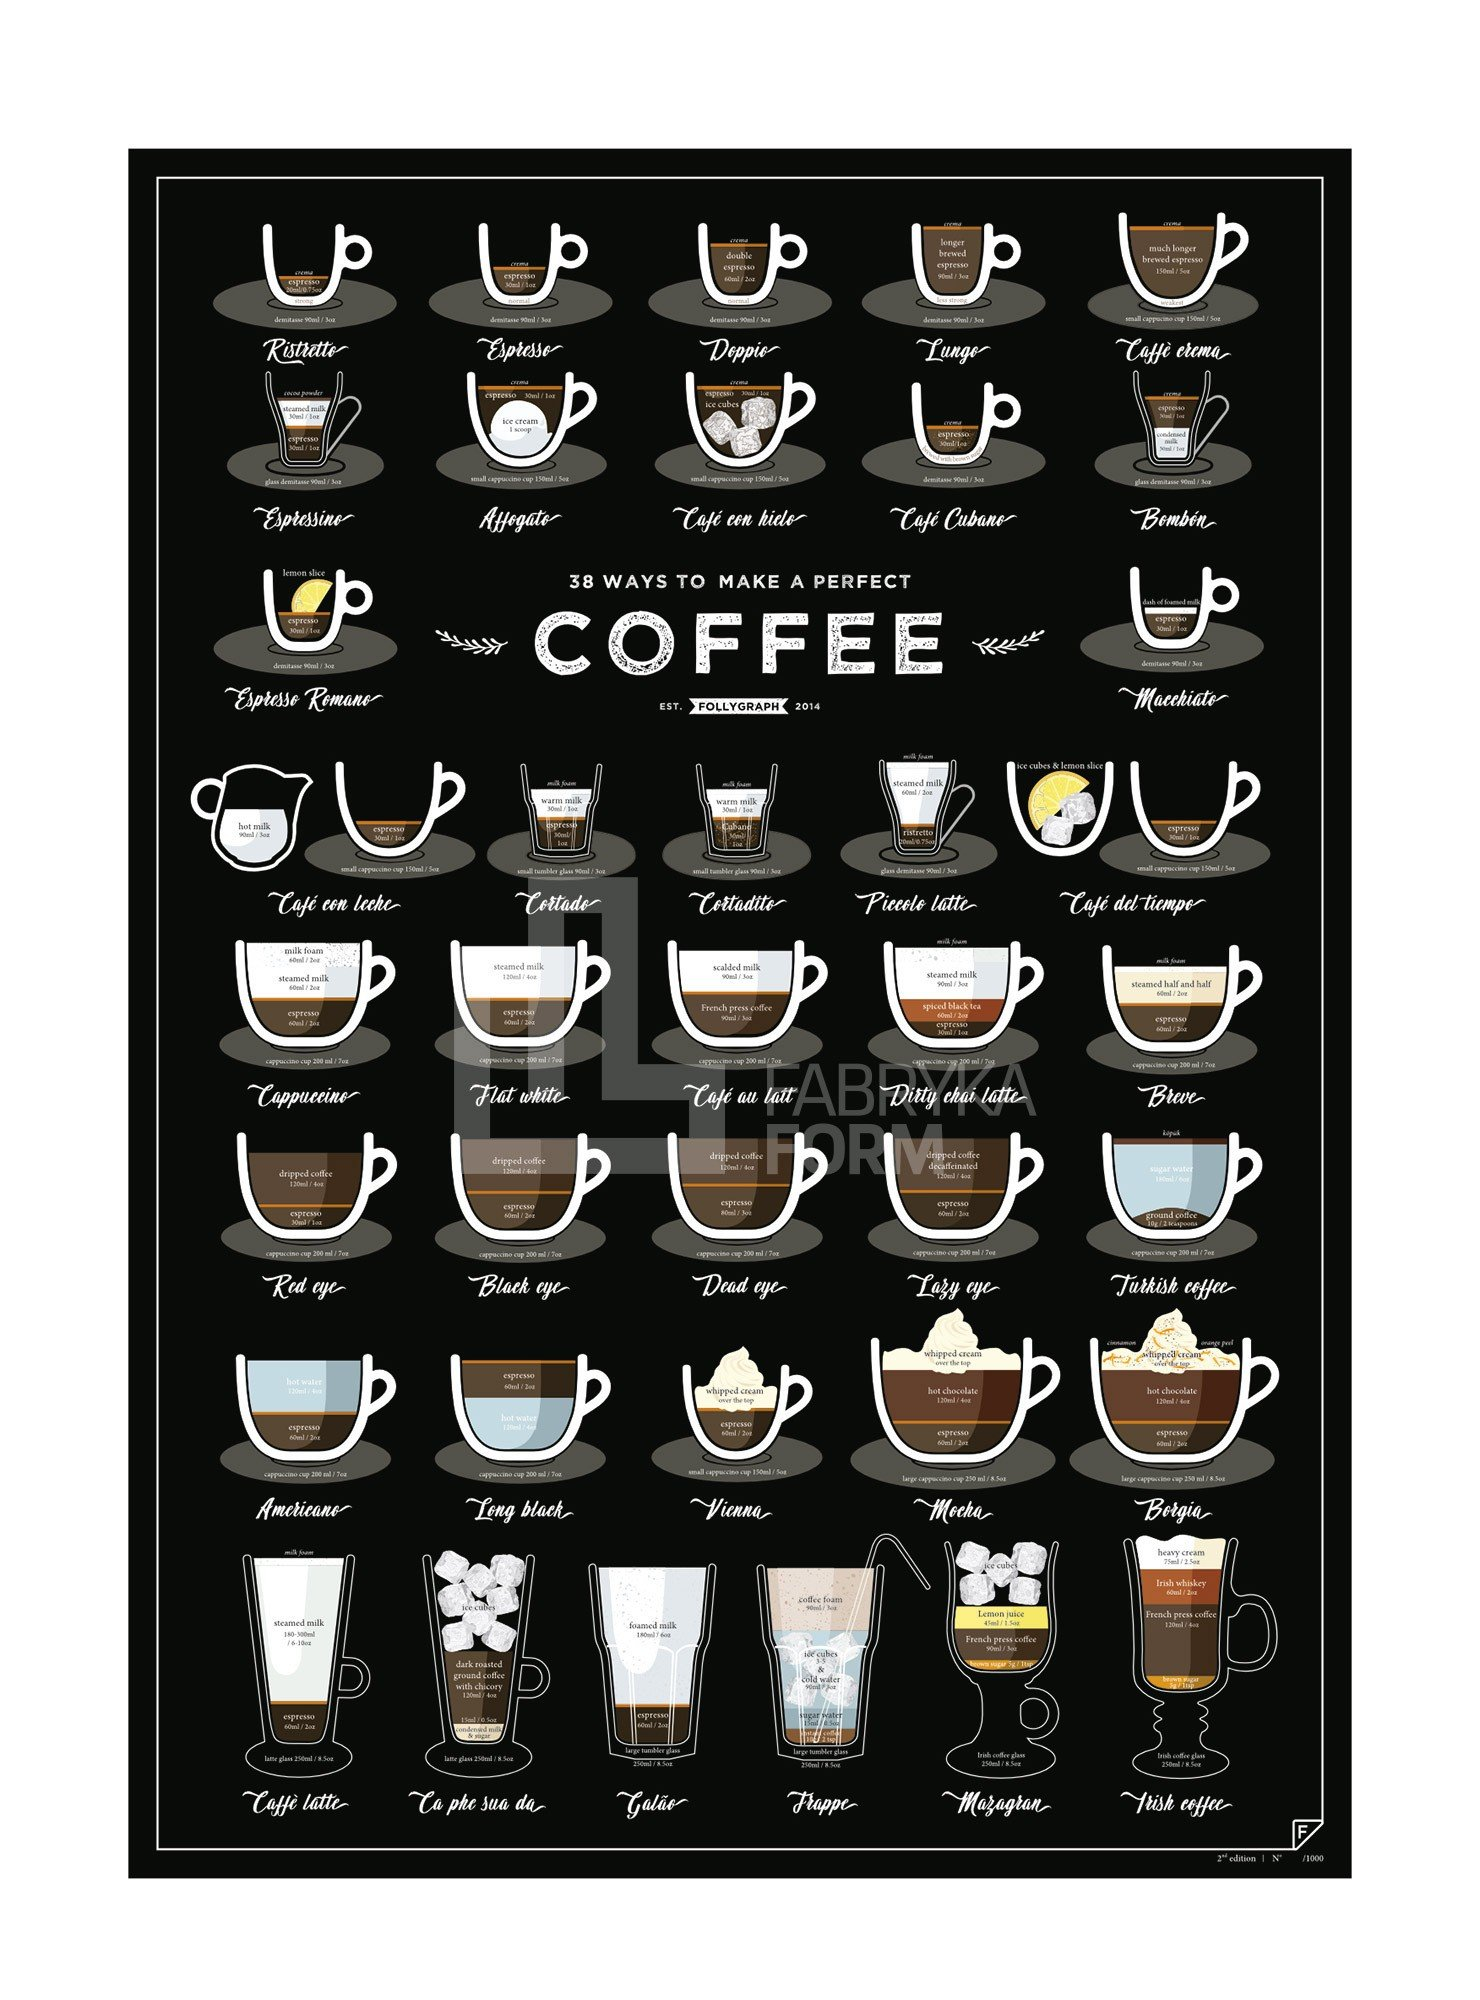 Plakat 38 Ways To Make a Perfect Coffee 2 ed. - 46376